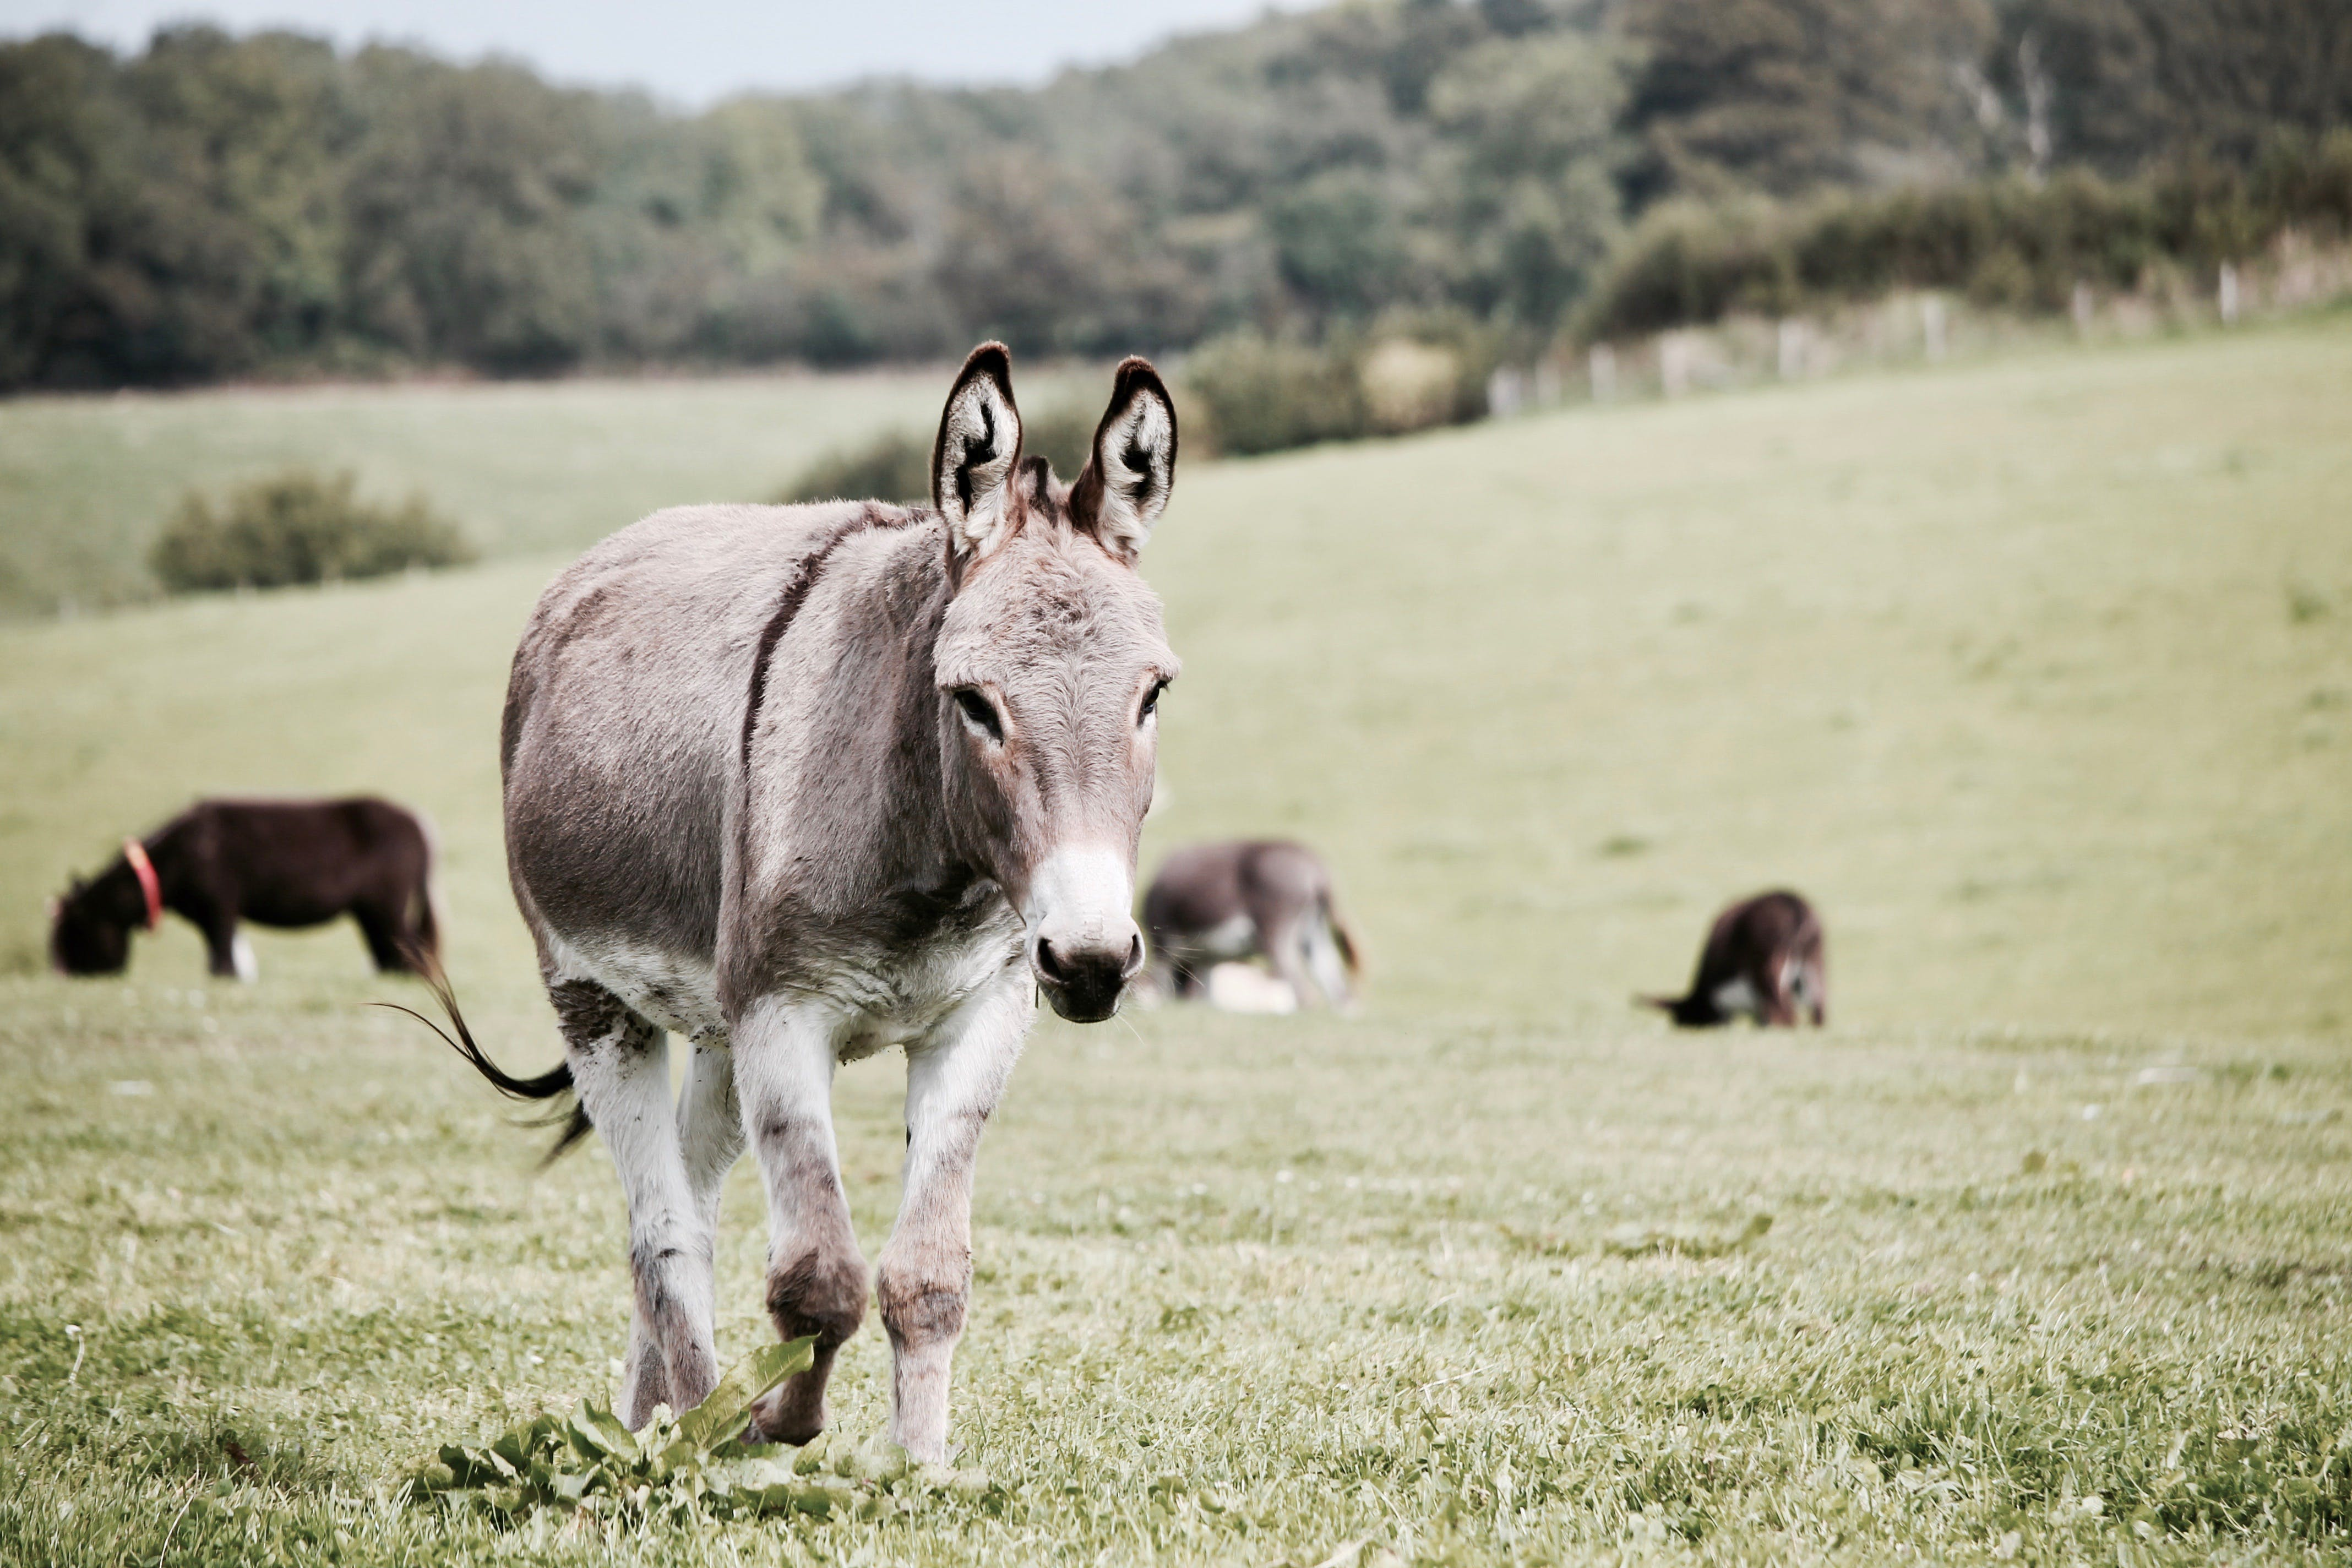 Gray Donkey on Grass